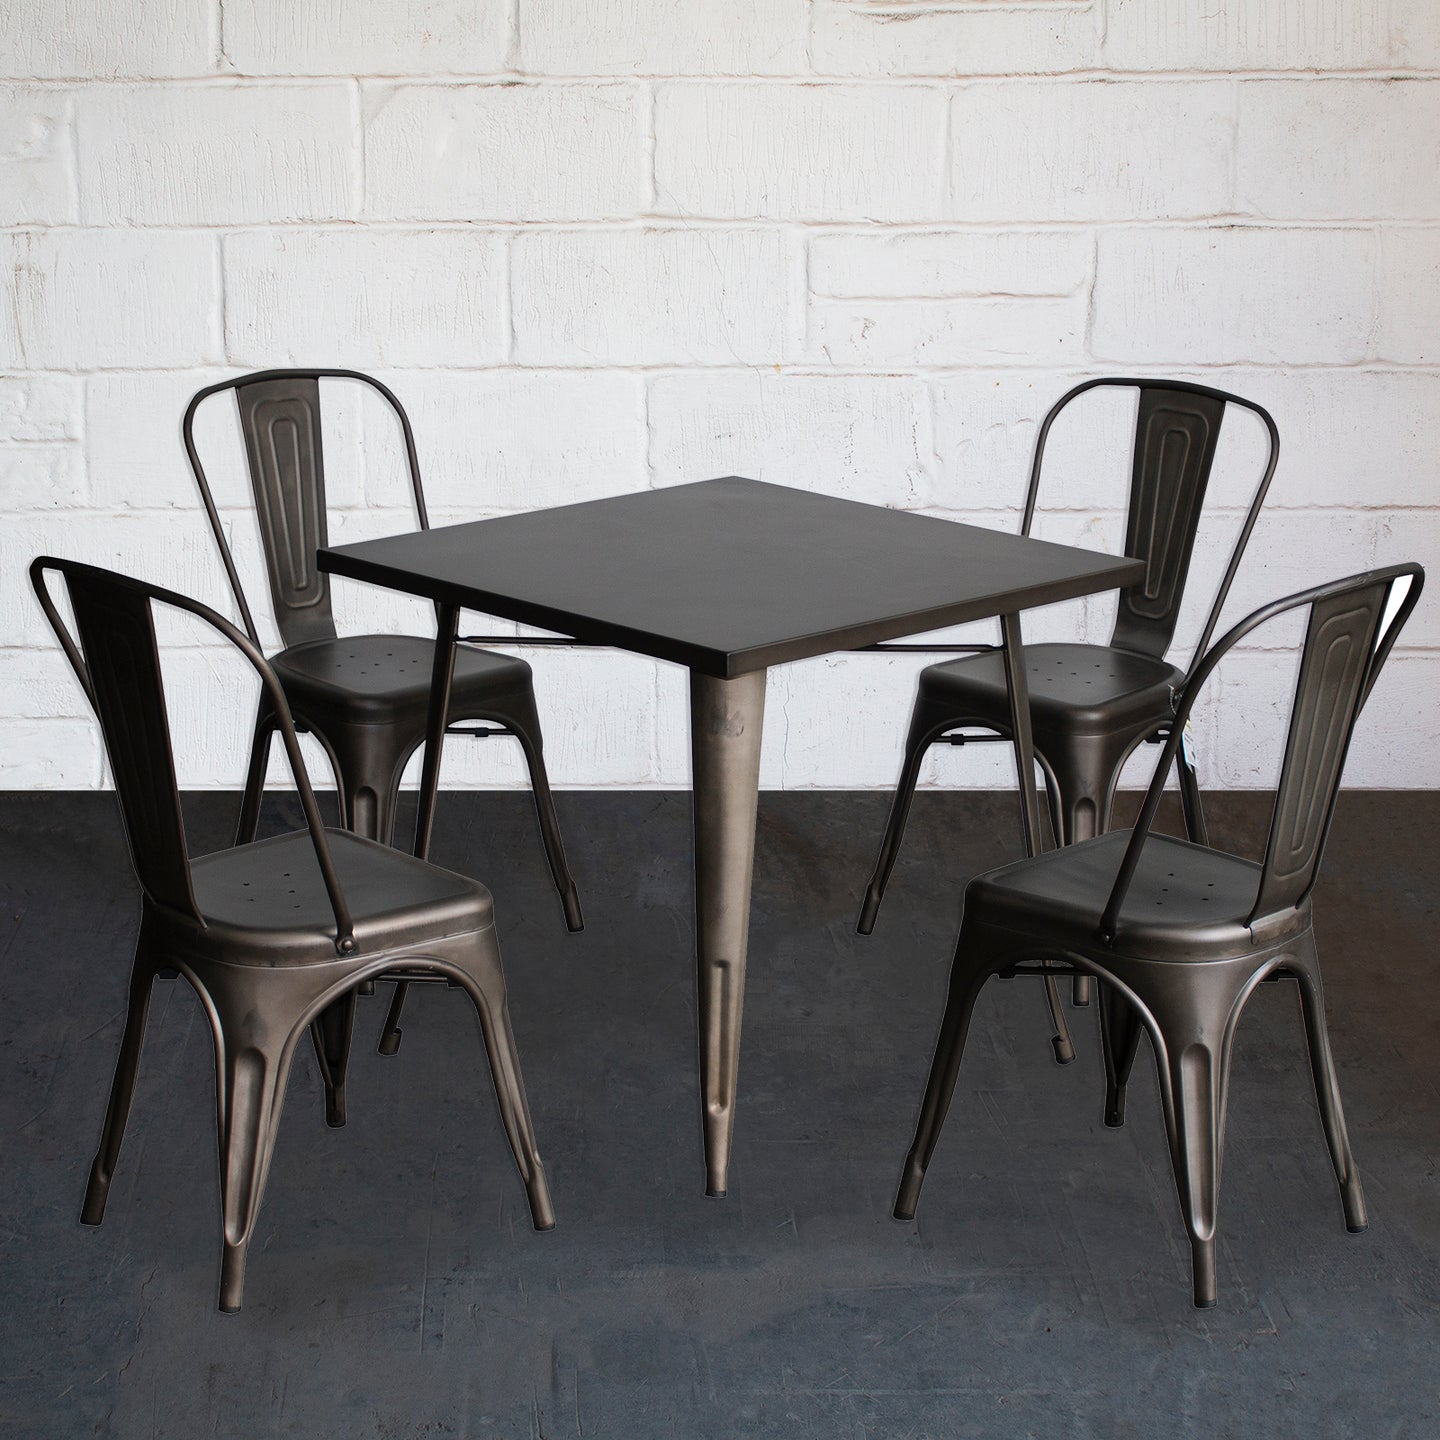 5PC Belvedere Table & Siena Chair Set - Gun Metal Grey